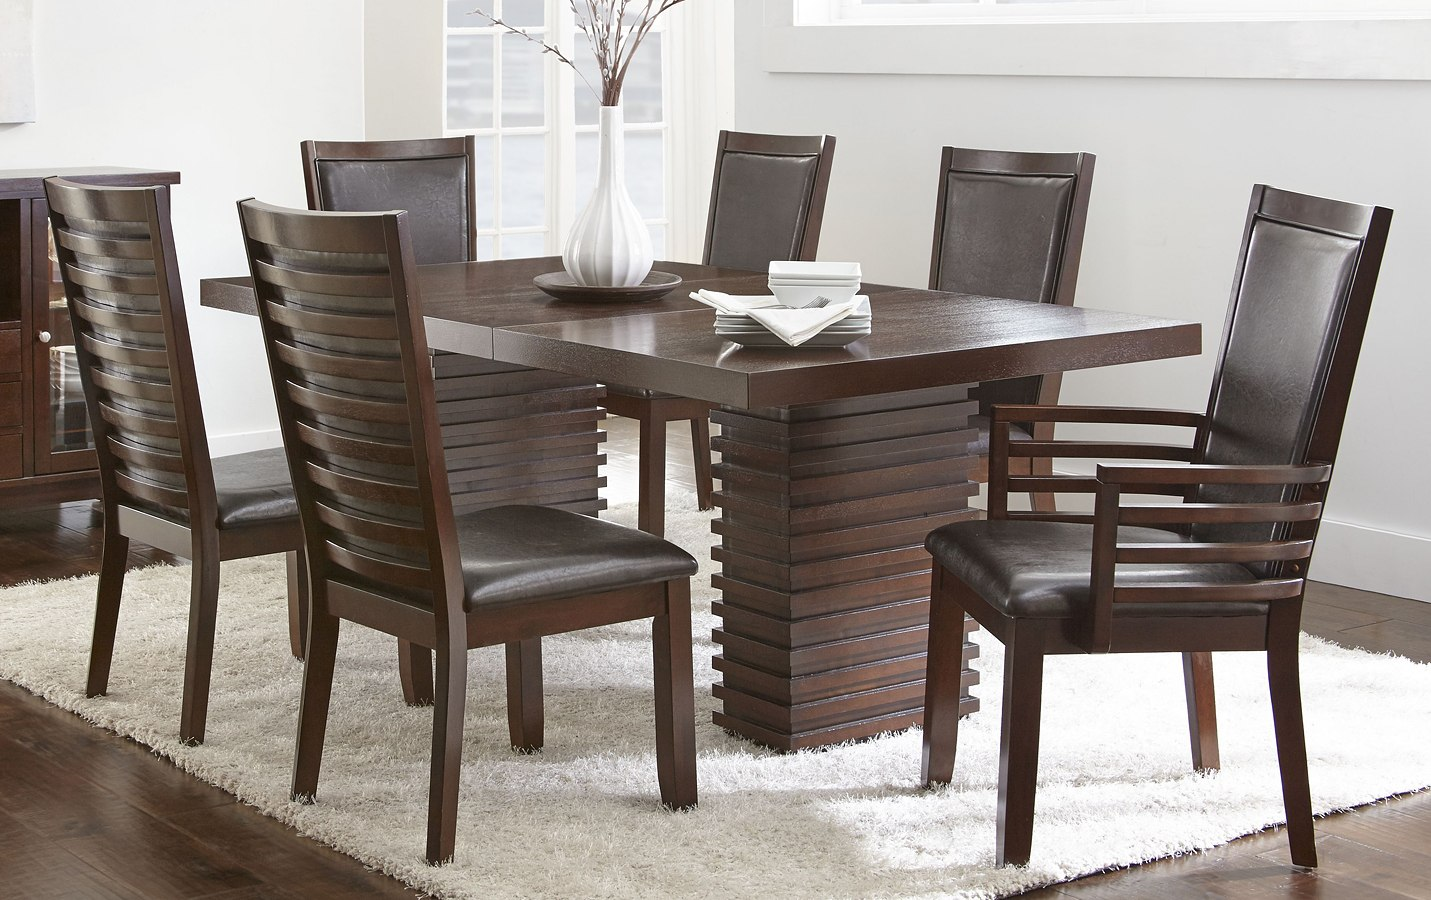 693c6039f88c Briana Dining Room Set w/ Brown Chairs by Steve Silver Furniture |  FurniturePick